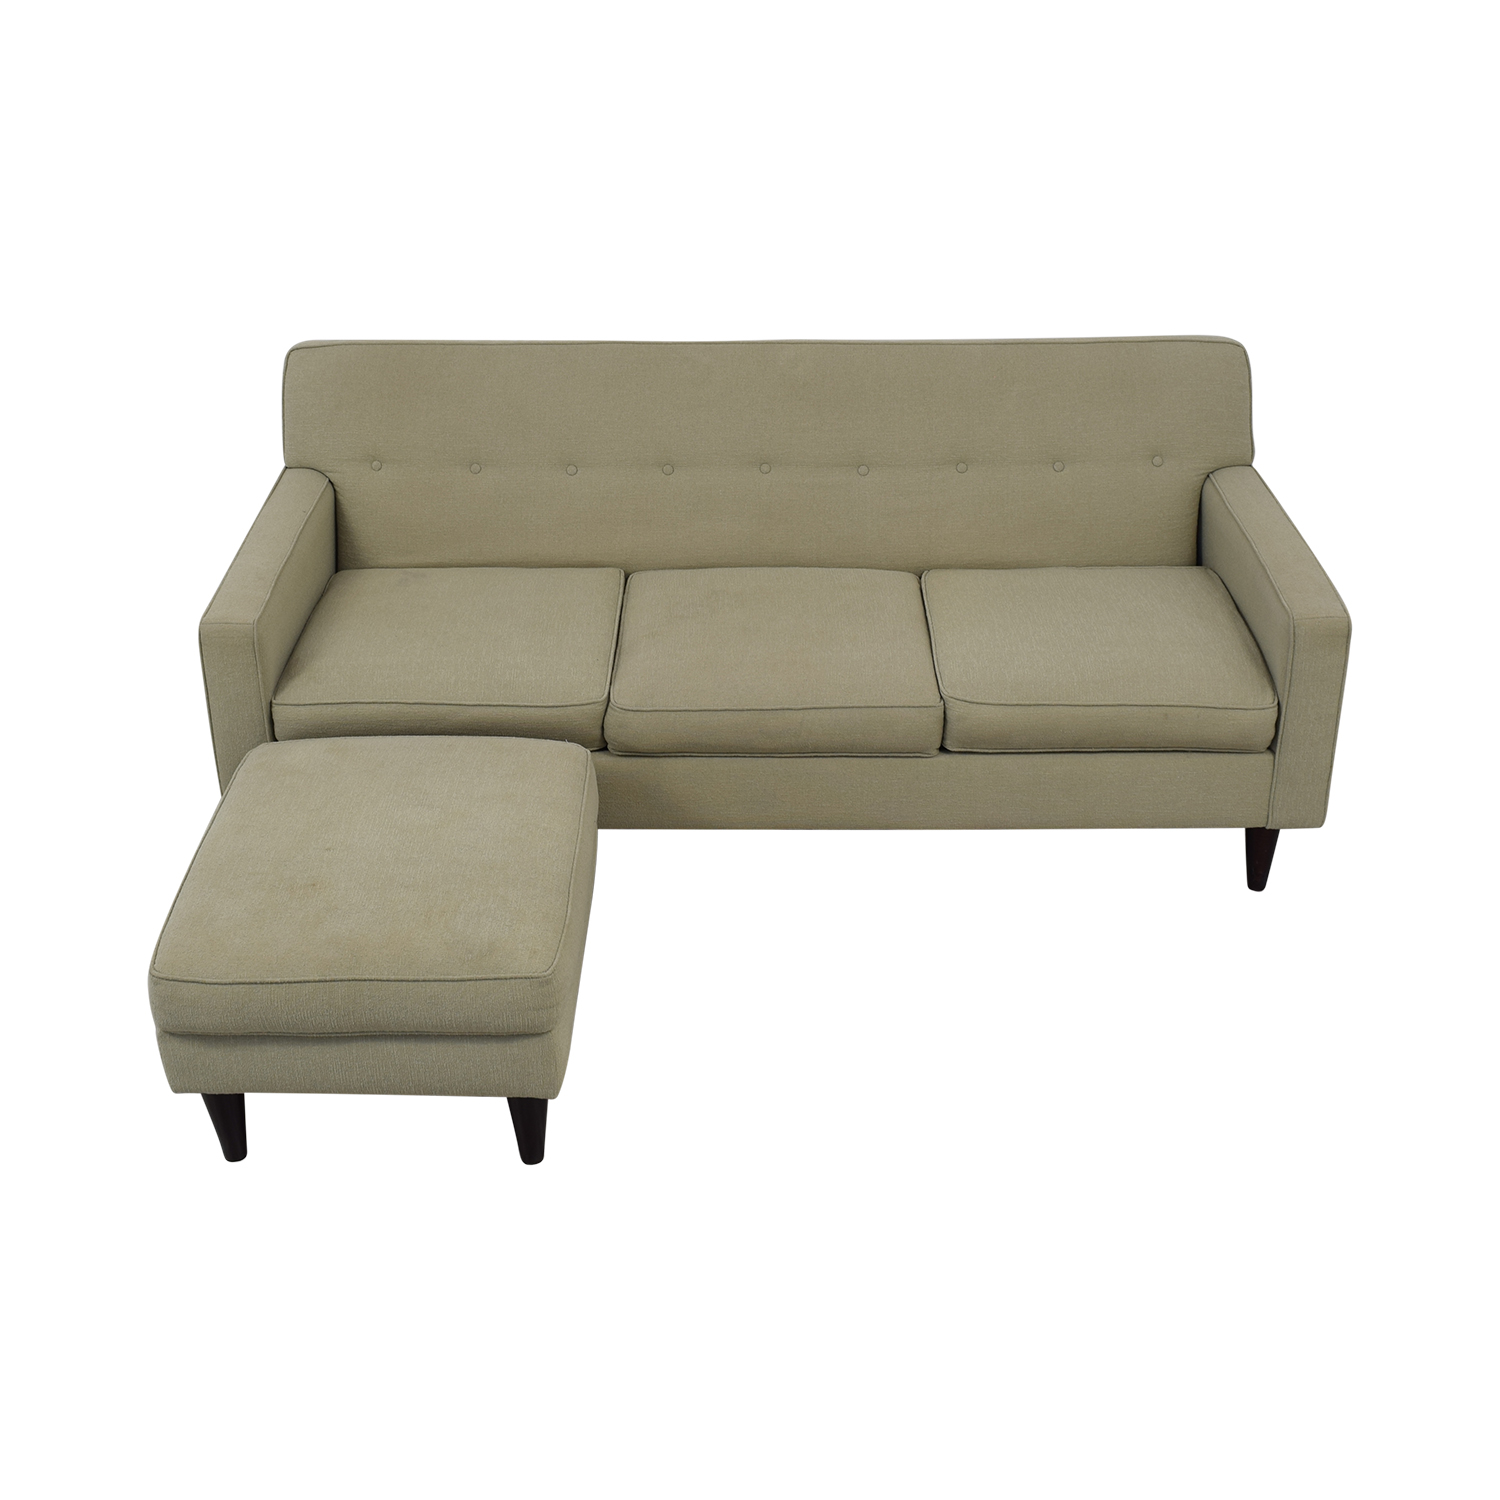 Max Home Furniture Max Home Mid-Century Style Sofa With Ottoman second hand